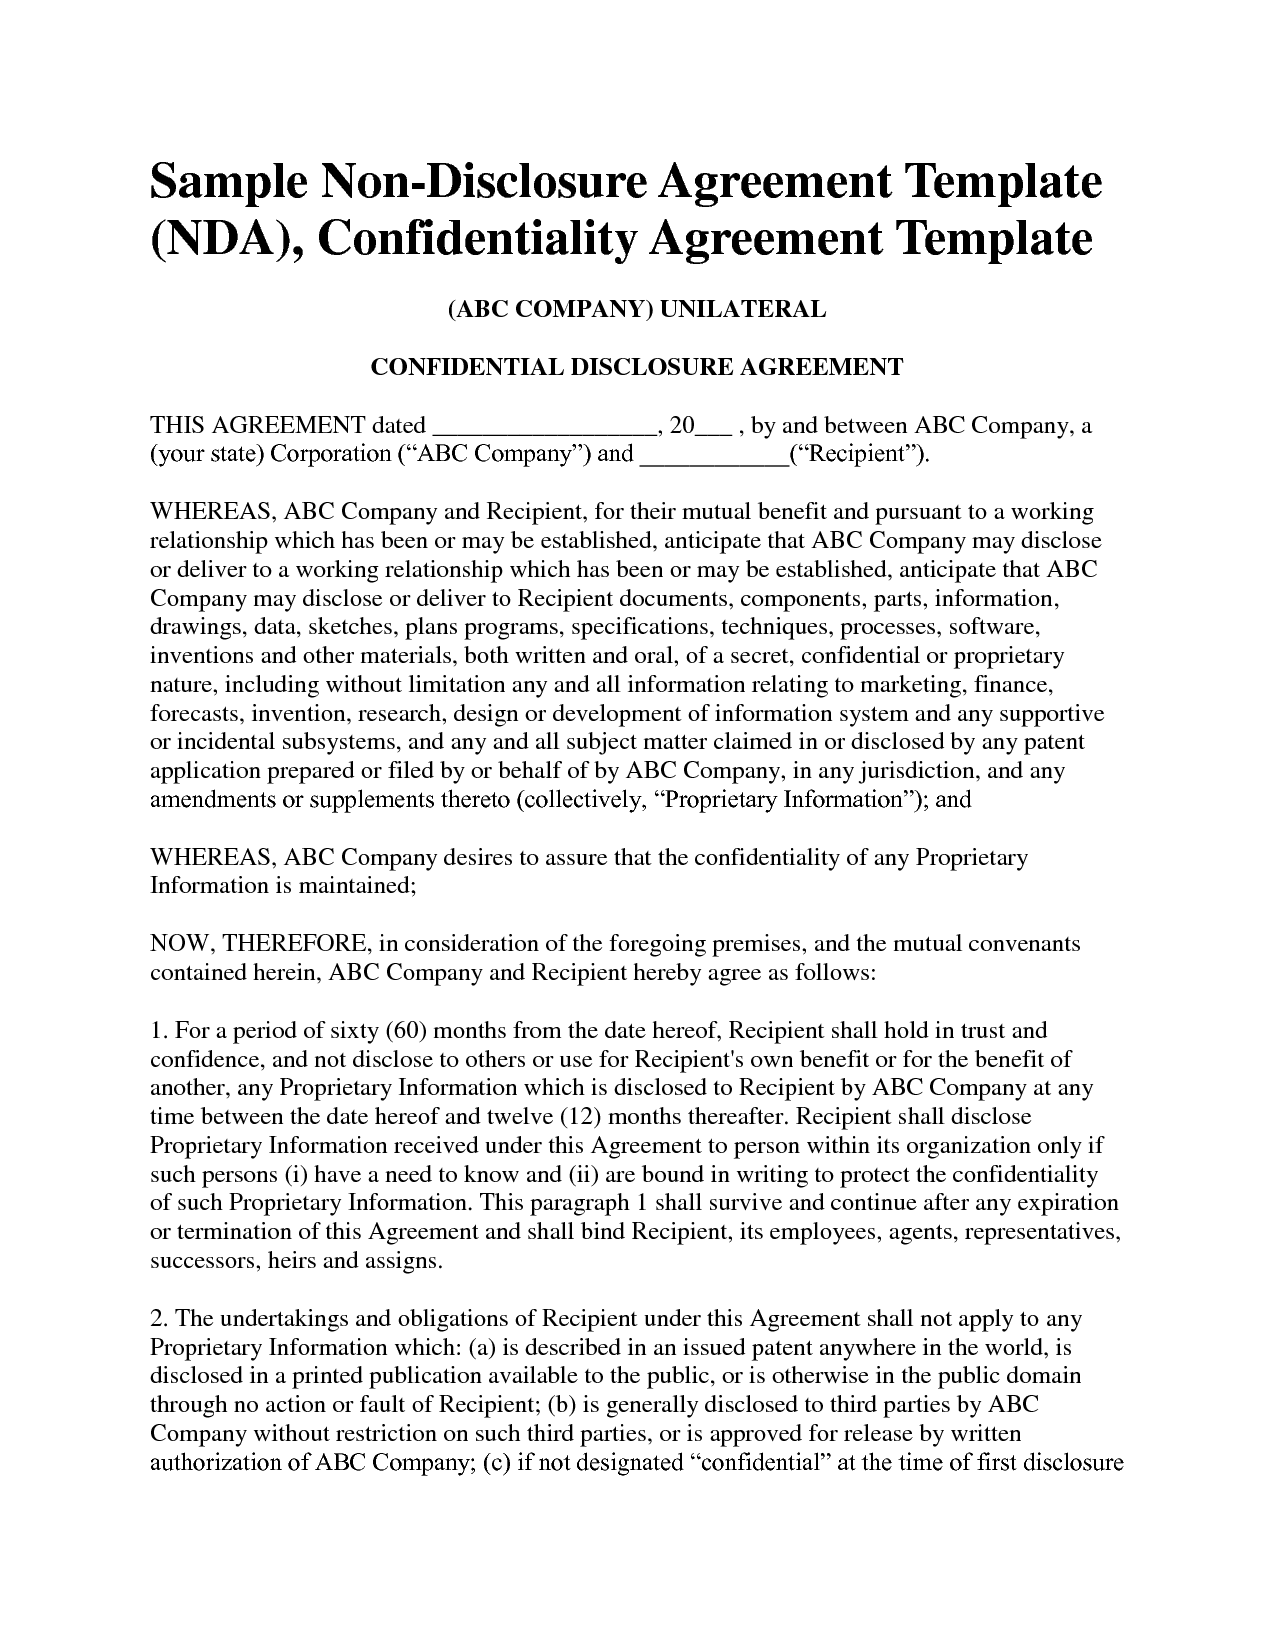 Non Disclosure Agreement Template Free Sample Nda Template Mvrsqrn ...